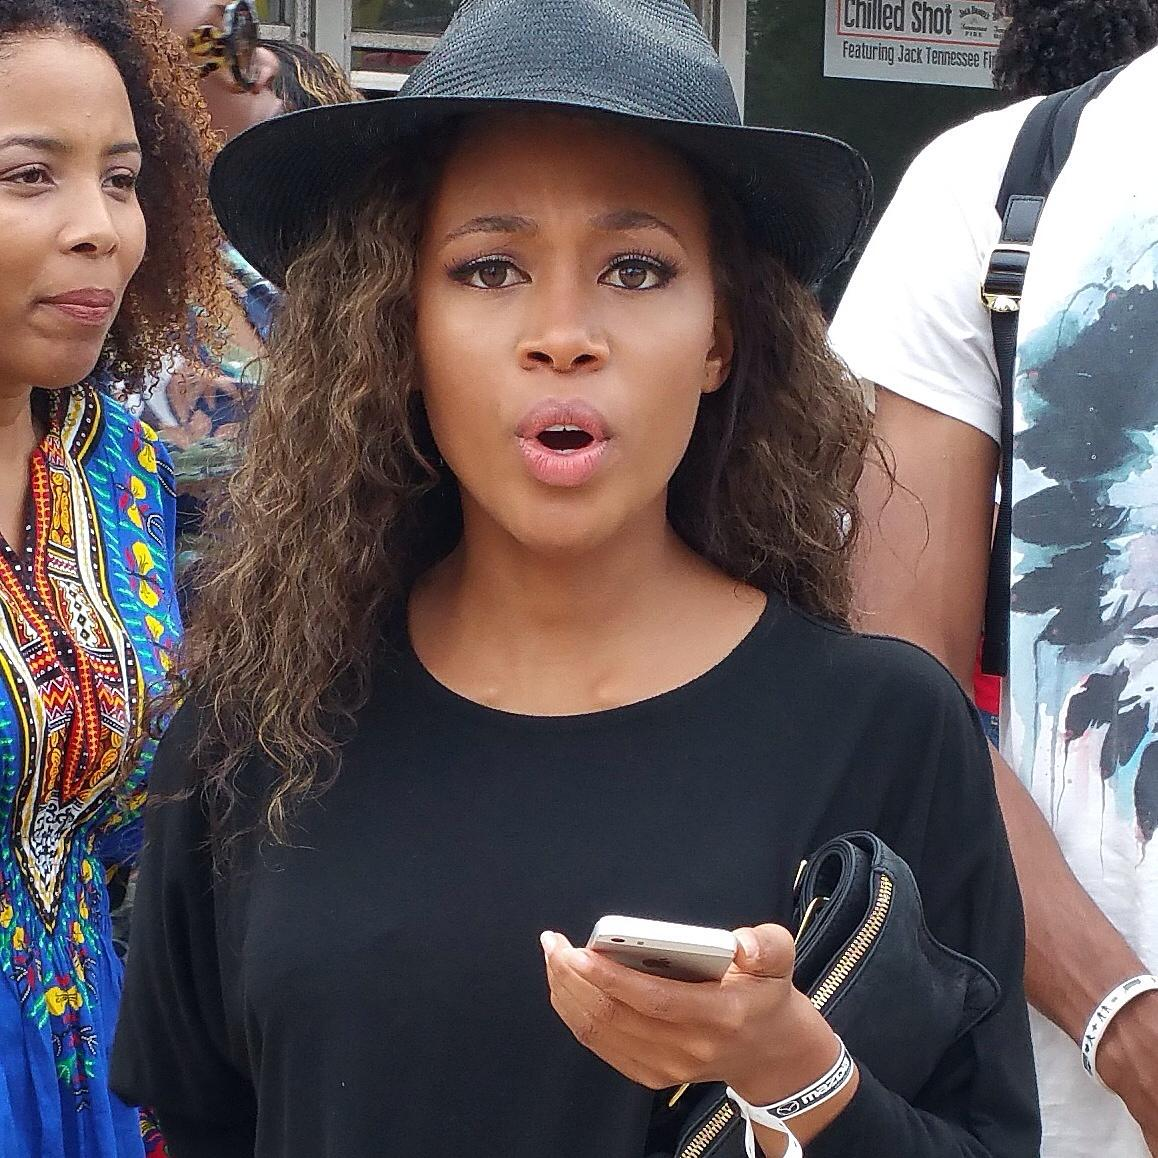 Twitter Nicole Beharie nudes (32 images), Paparazzi